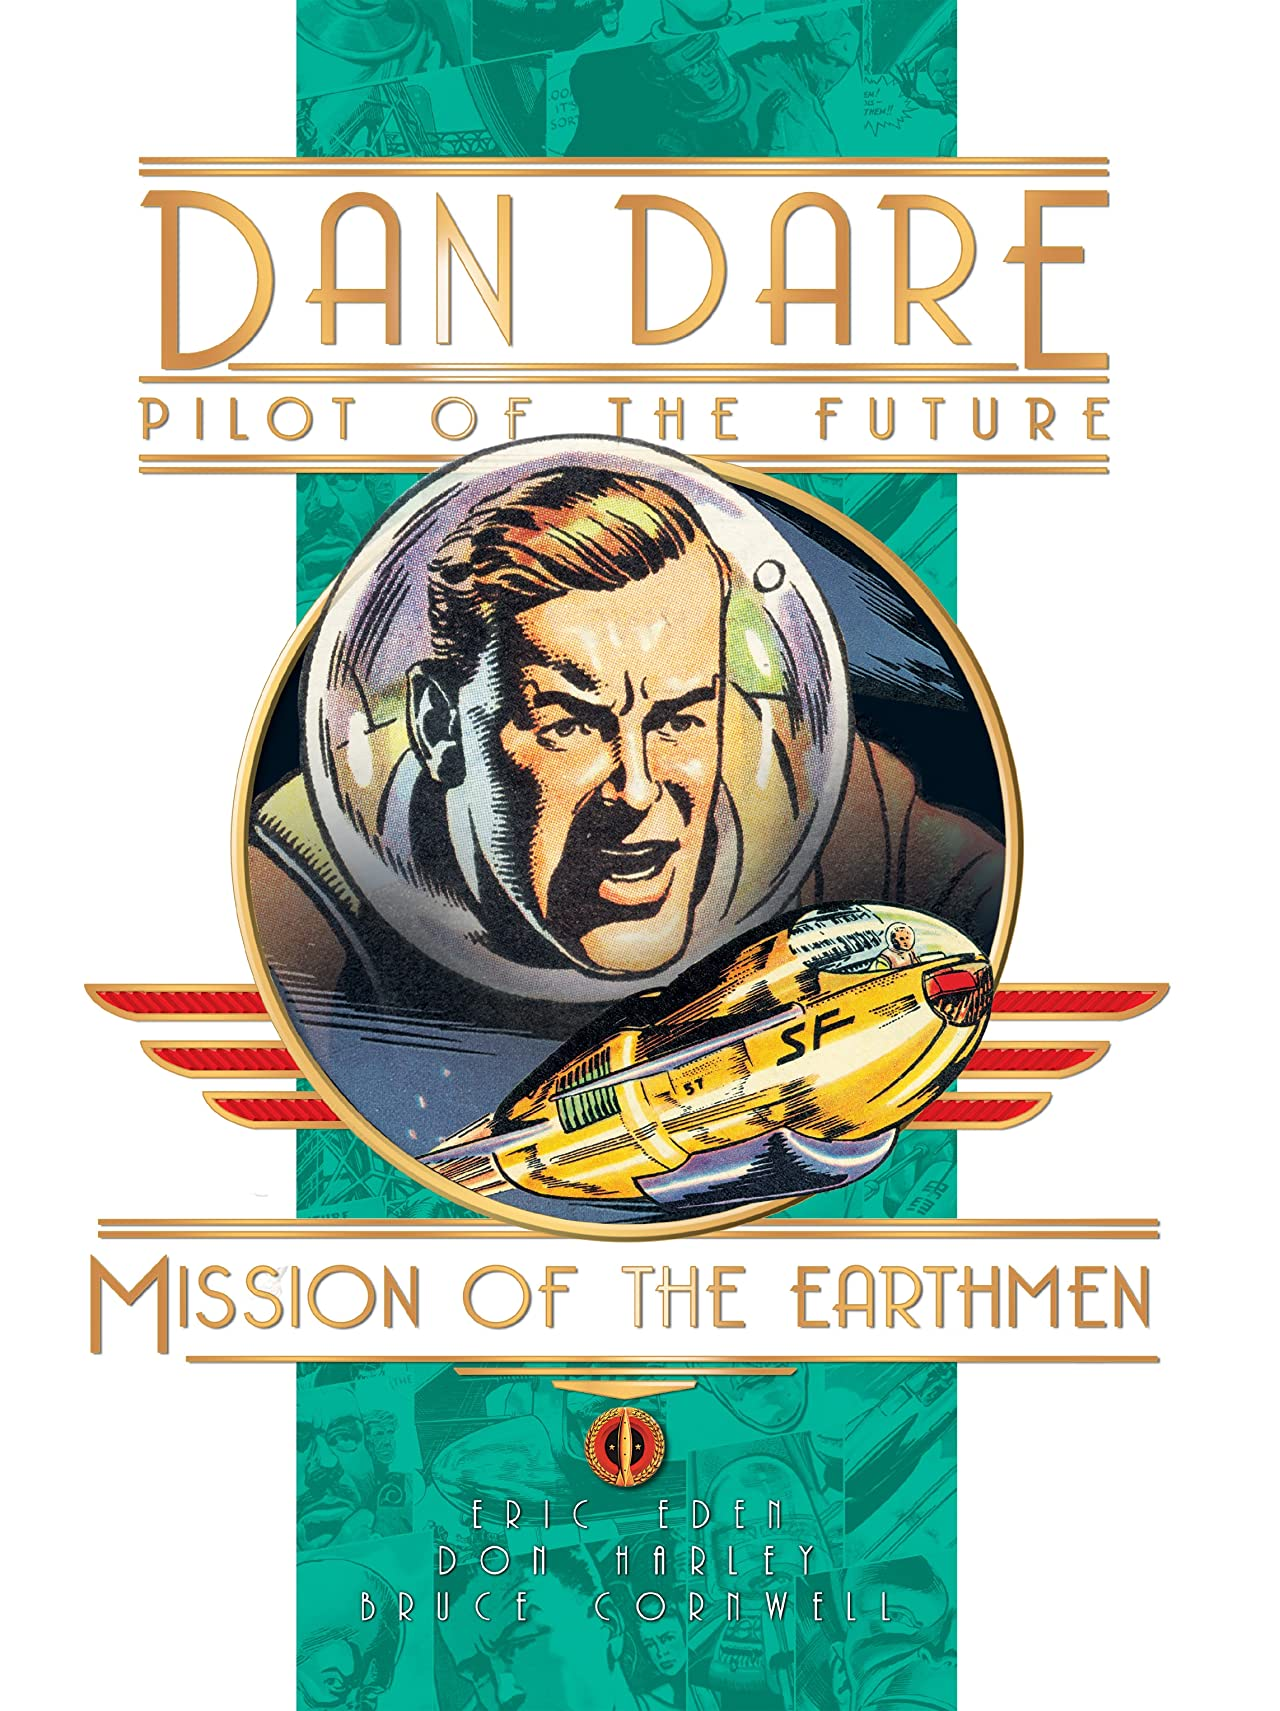 Dan Dare: Mission of the Earthmen Vol. 1